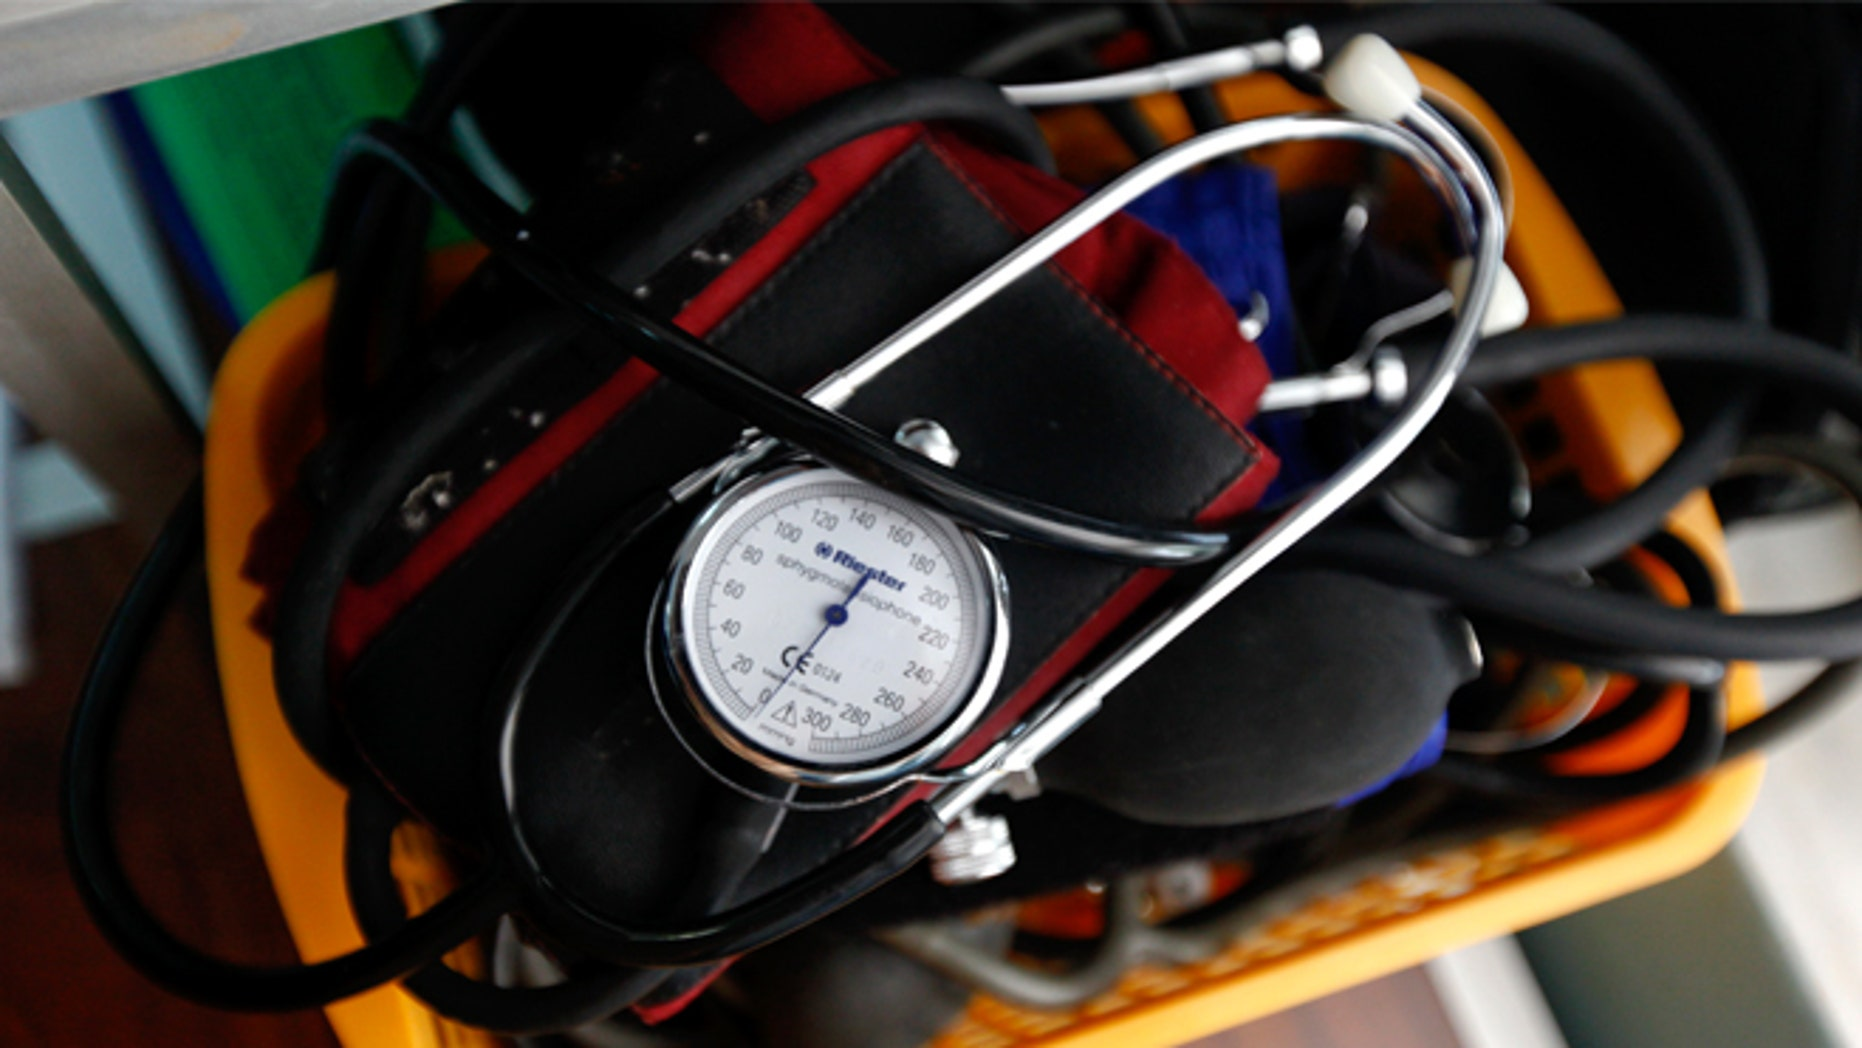 A blood-pressure machine is seen inside a basket with other medical devices (REUTERS/Yorgos Karahalis).